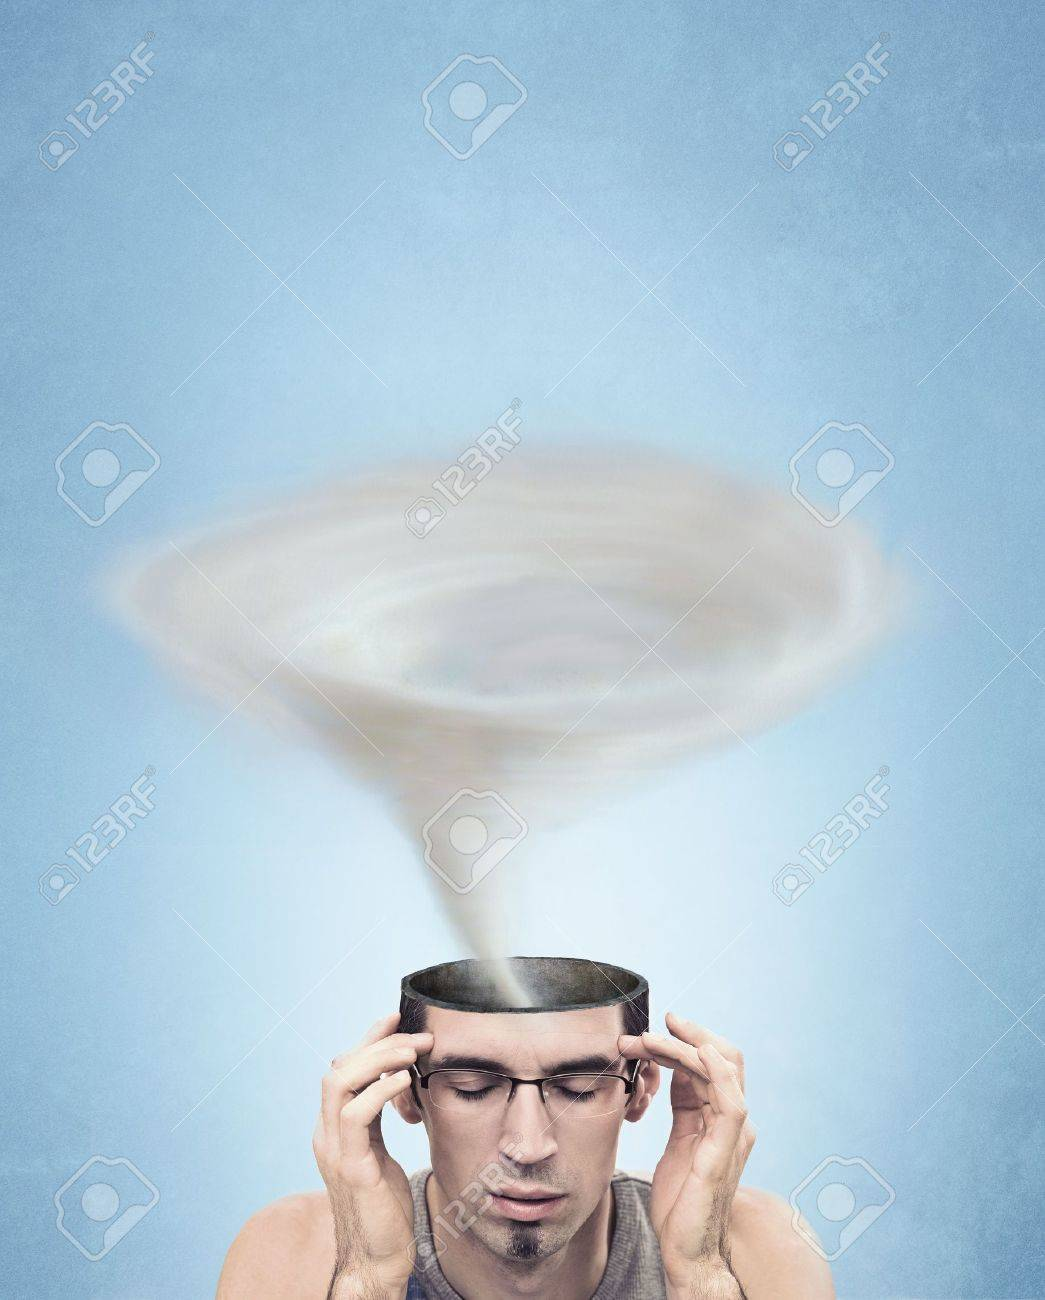 Conceptual picture - tornado head man Stock Photo - 7079390